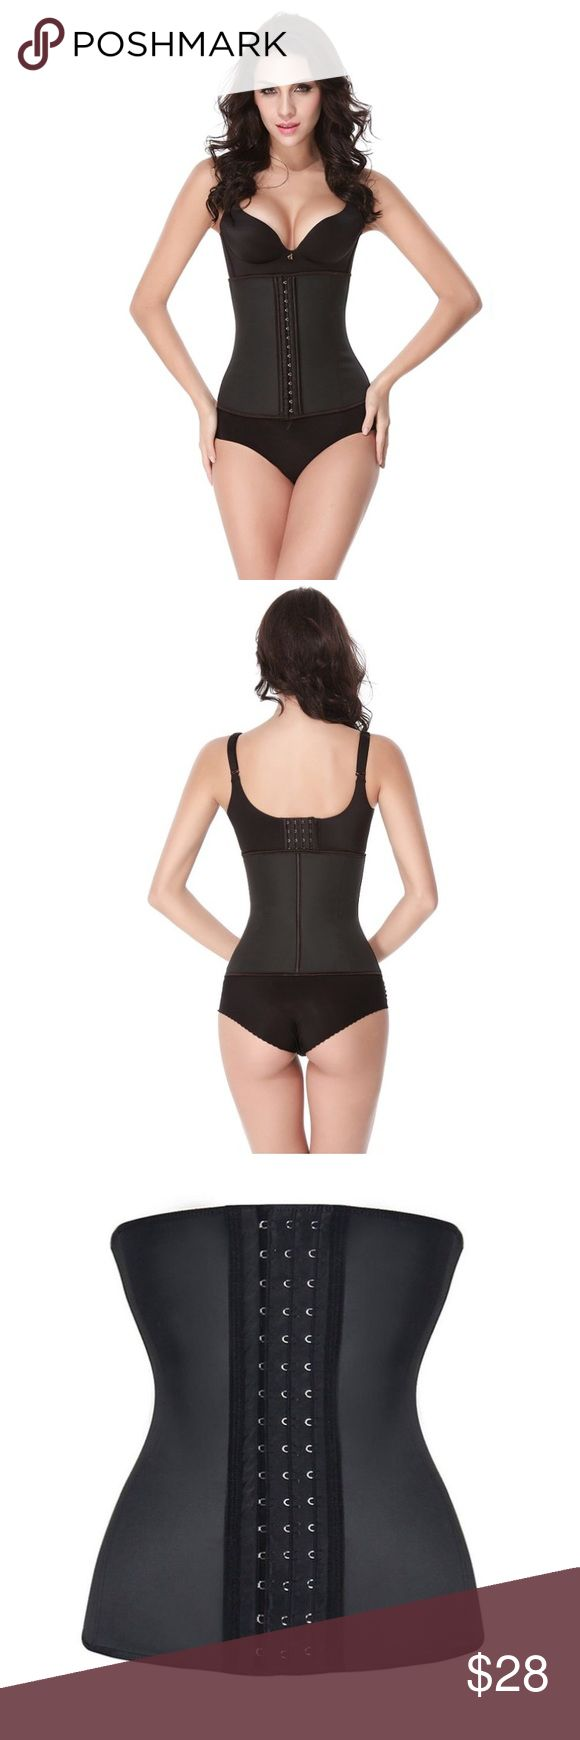 Women's Latex Underbust Corset Waist Training Brand New. Size small with waist 24.4-27.6 inches and height 10.6 in.  Latex material have a great function of ductility,which means it is a good way to help you keep a good figure and could help you lose weight. Measurement of the Corset, NOT YOUR BODY SIZE. Please measure your size before. Other